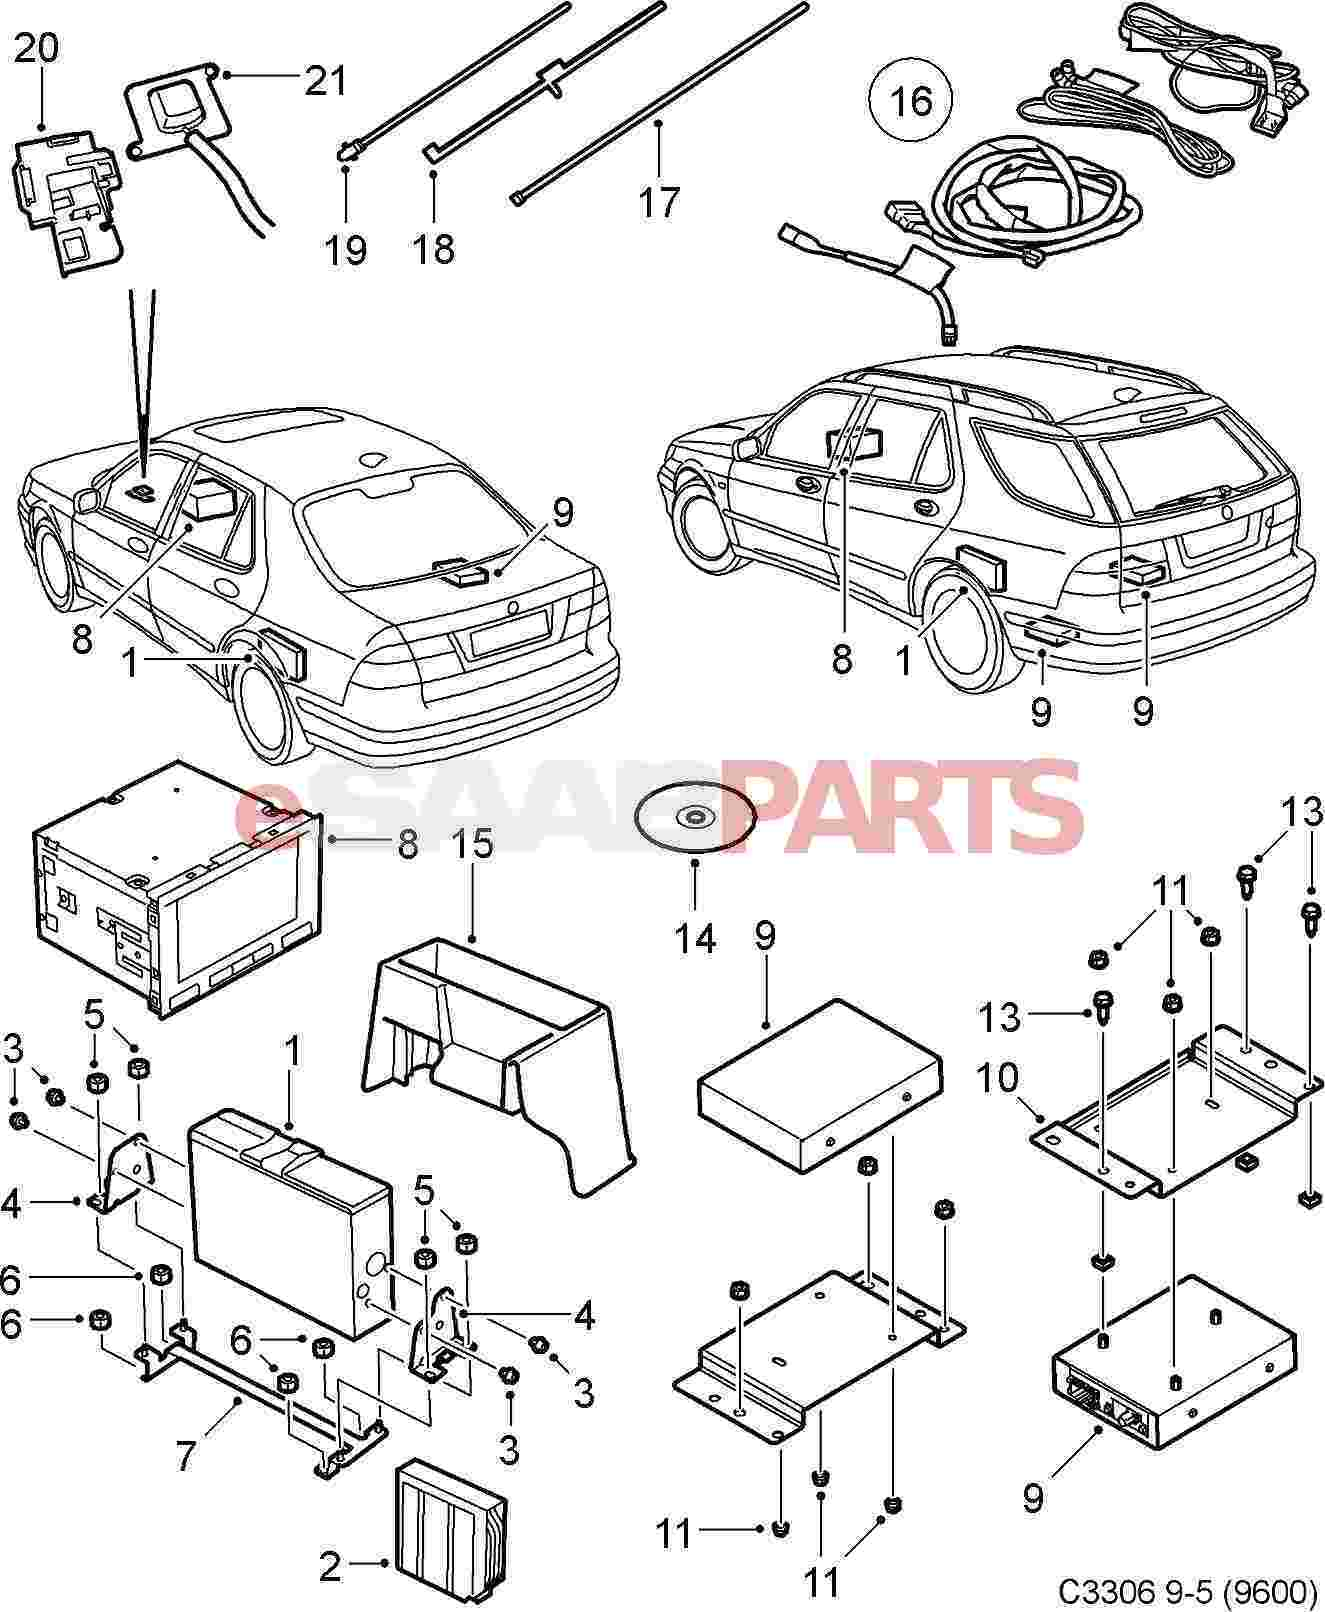 [5374517] saab navigation radio (denso) 2005 - genuine ... suzuki navigation wiring diagram saab navigation wiring diagram #11